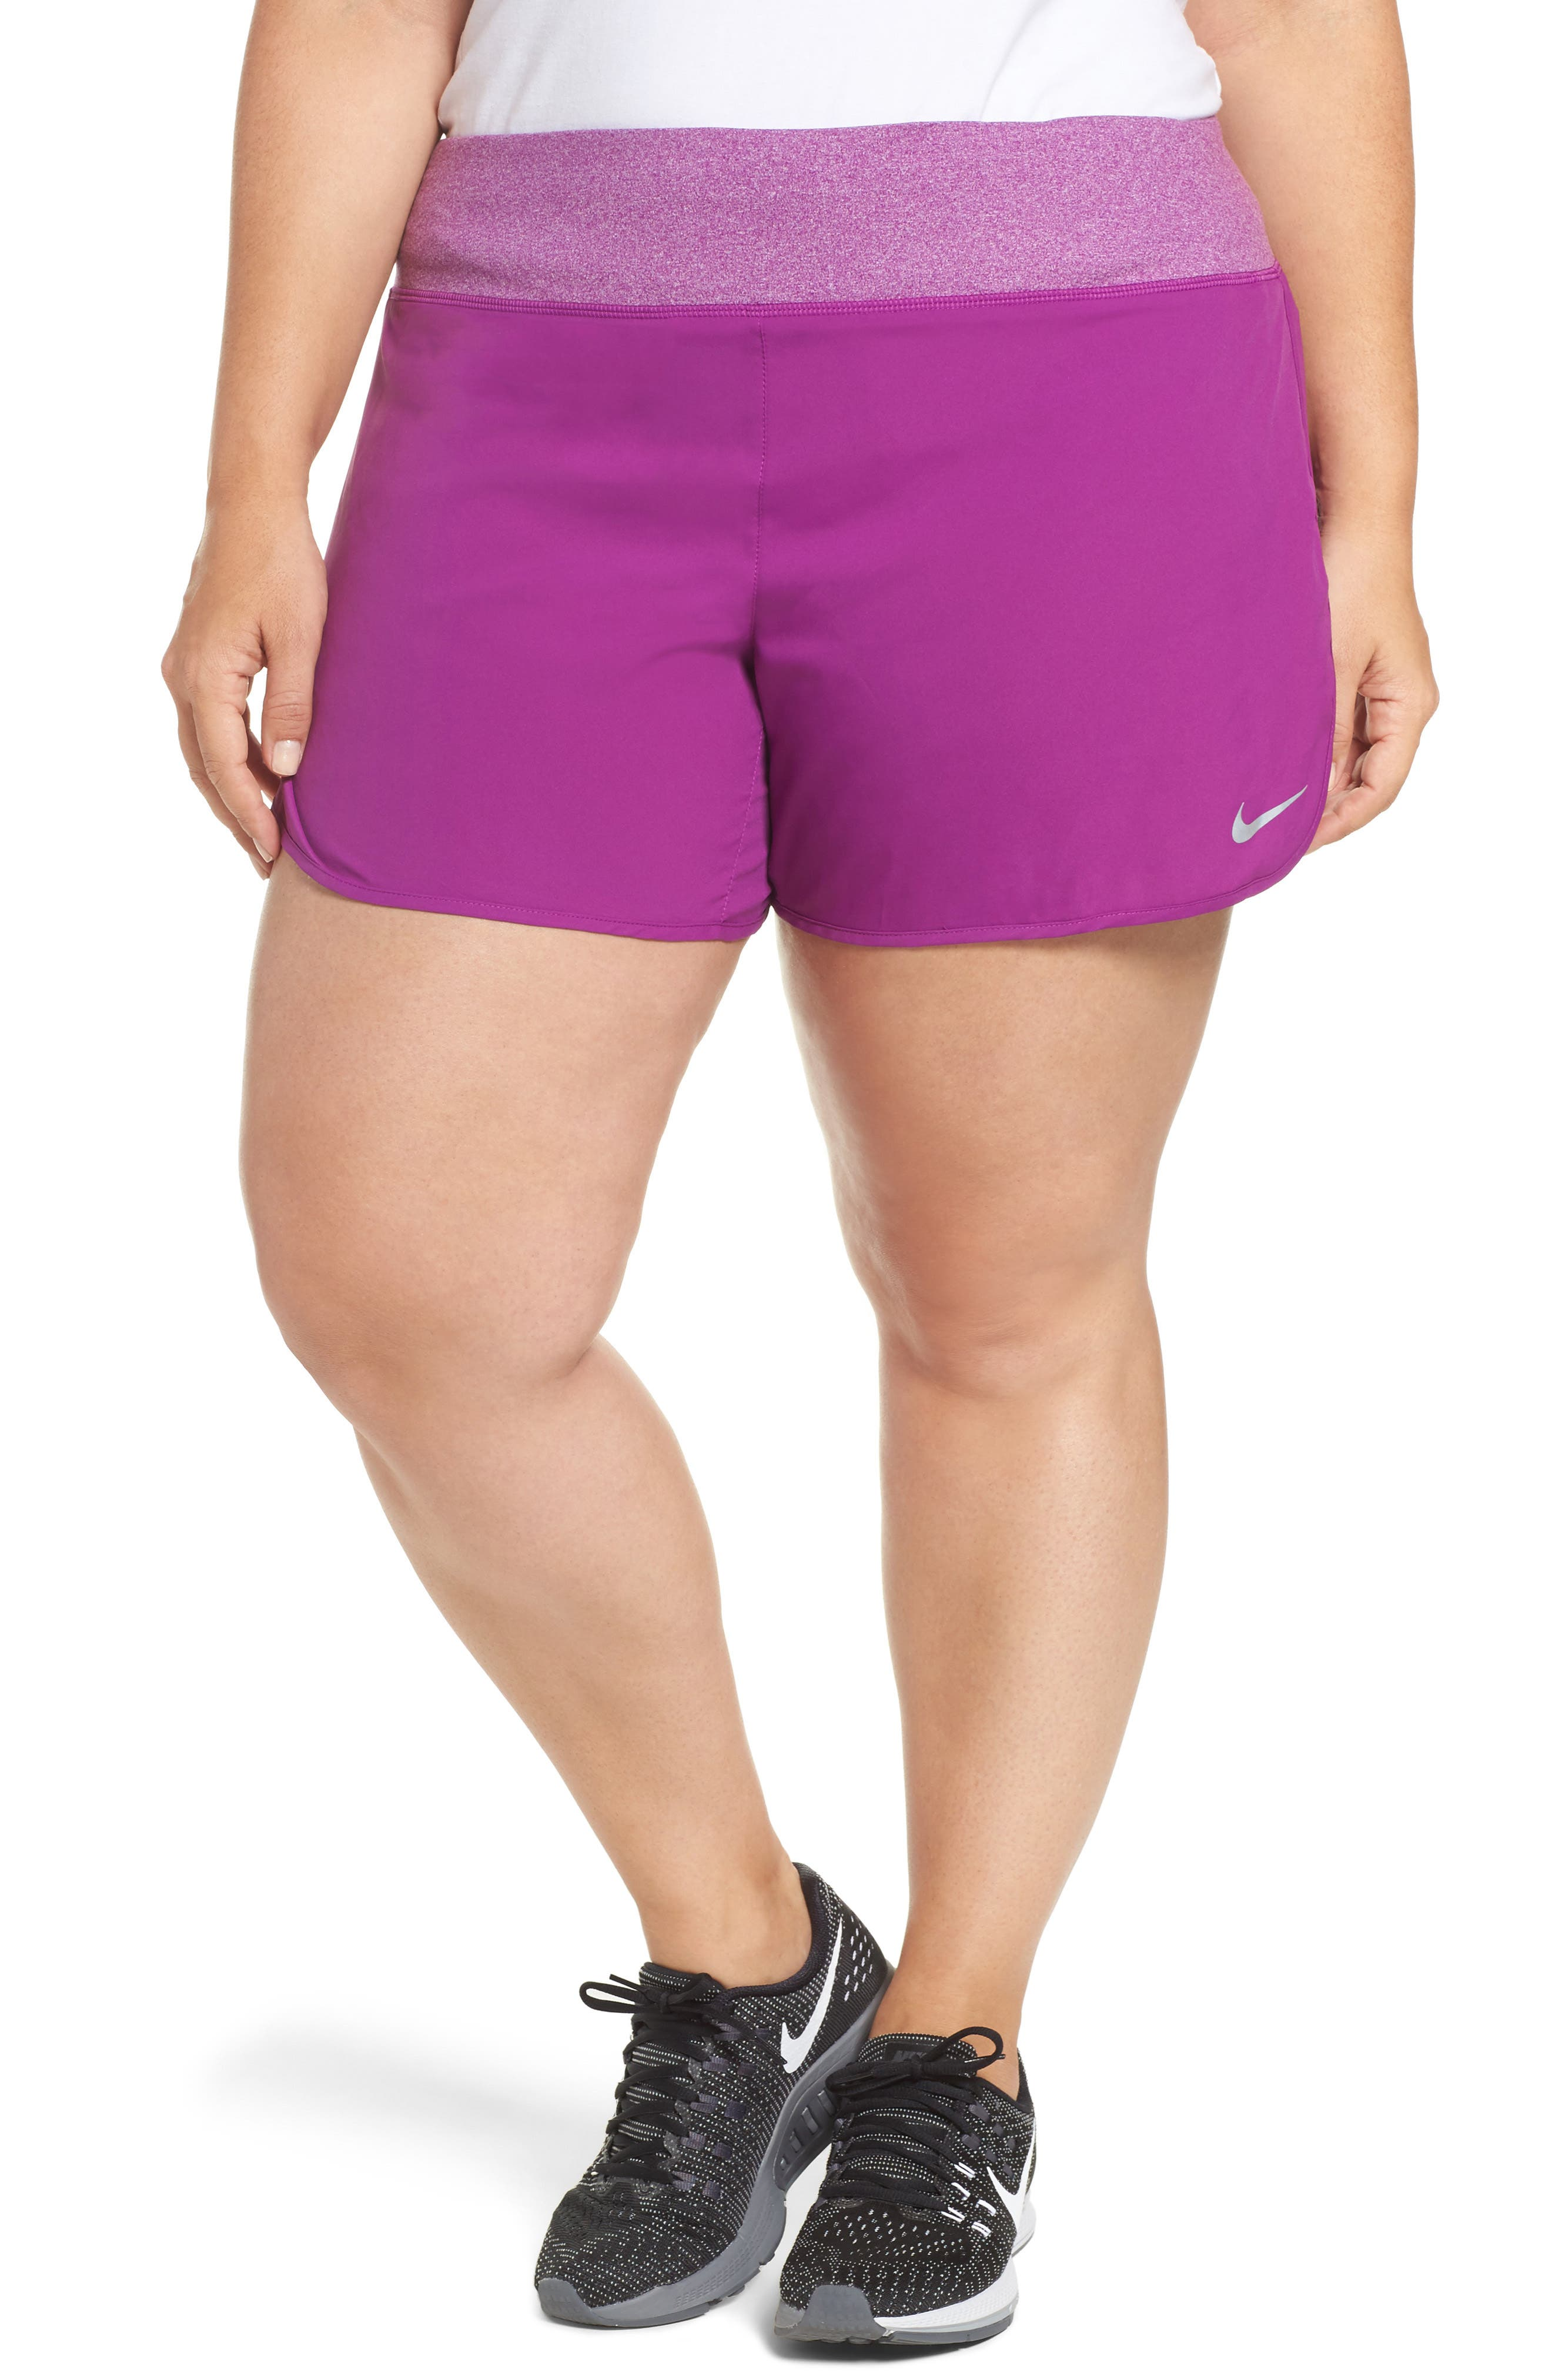 Alternate Image 1 Selected - Nike Rival Running Shorts (Plus Size)